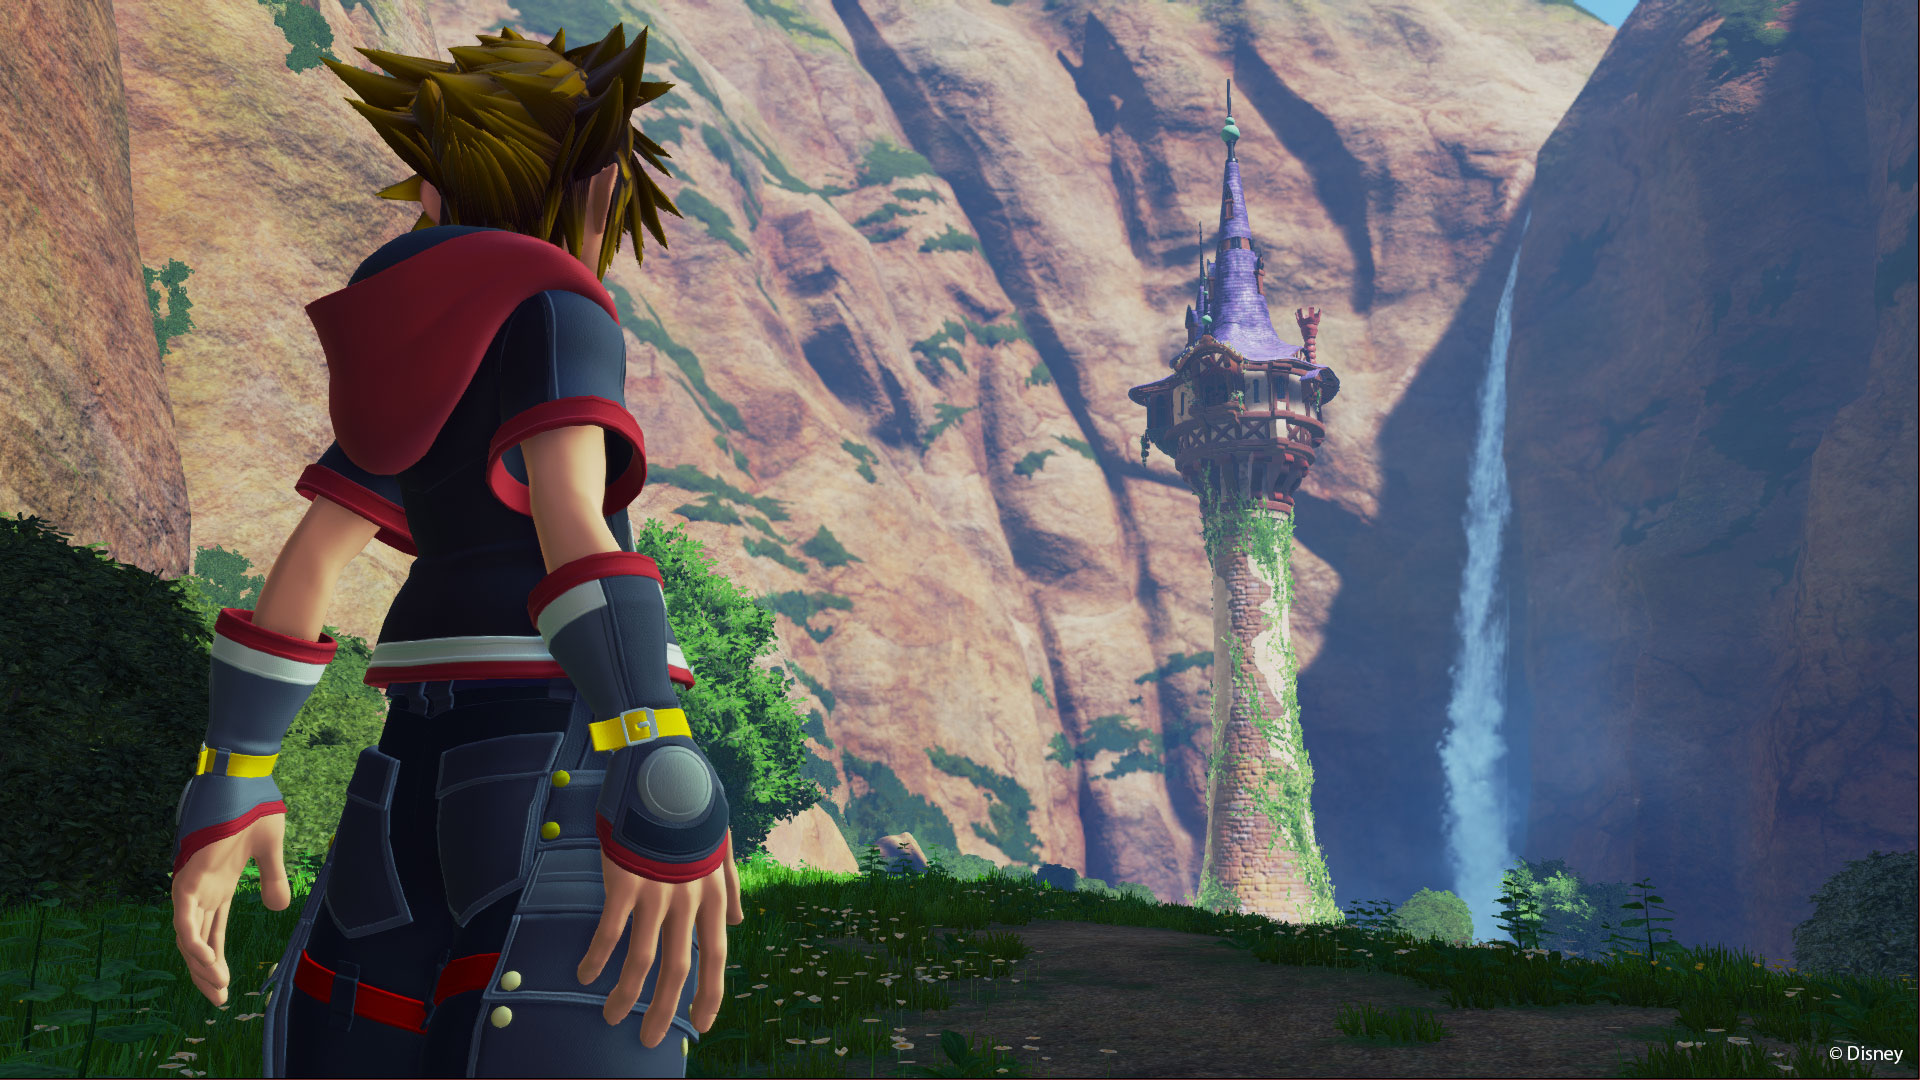 D23 2017: Kingdom Hearts 3 D23 Trailer Has New Information Including 2018 Release Date